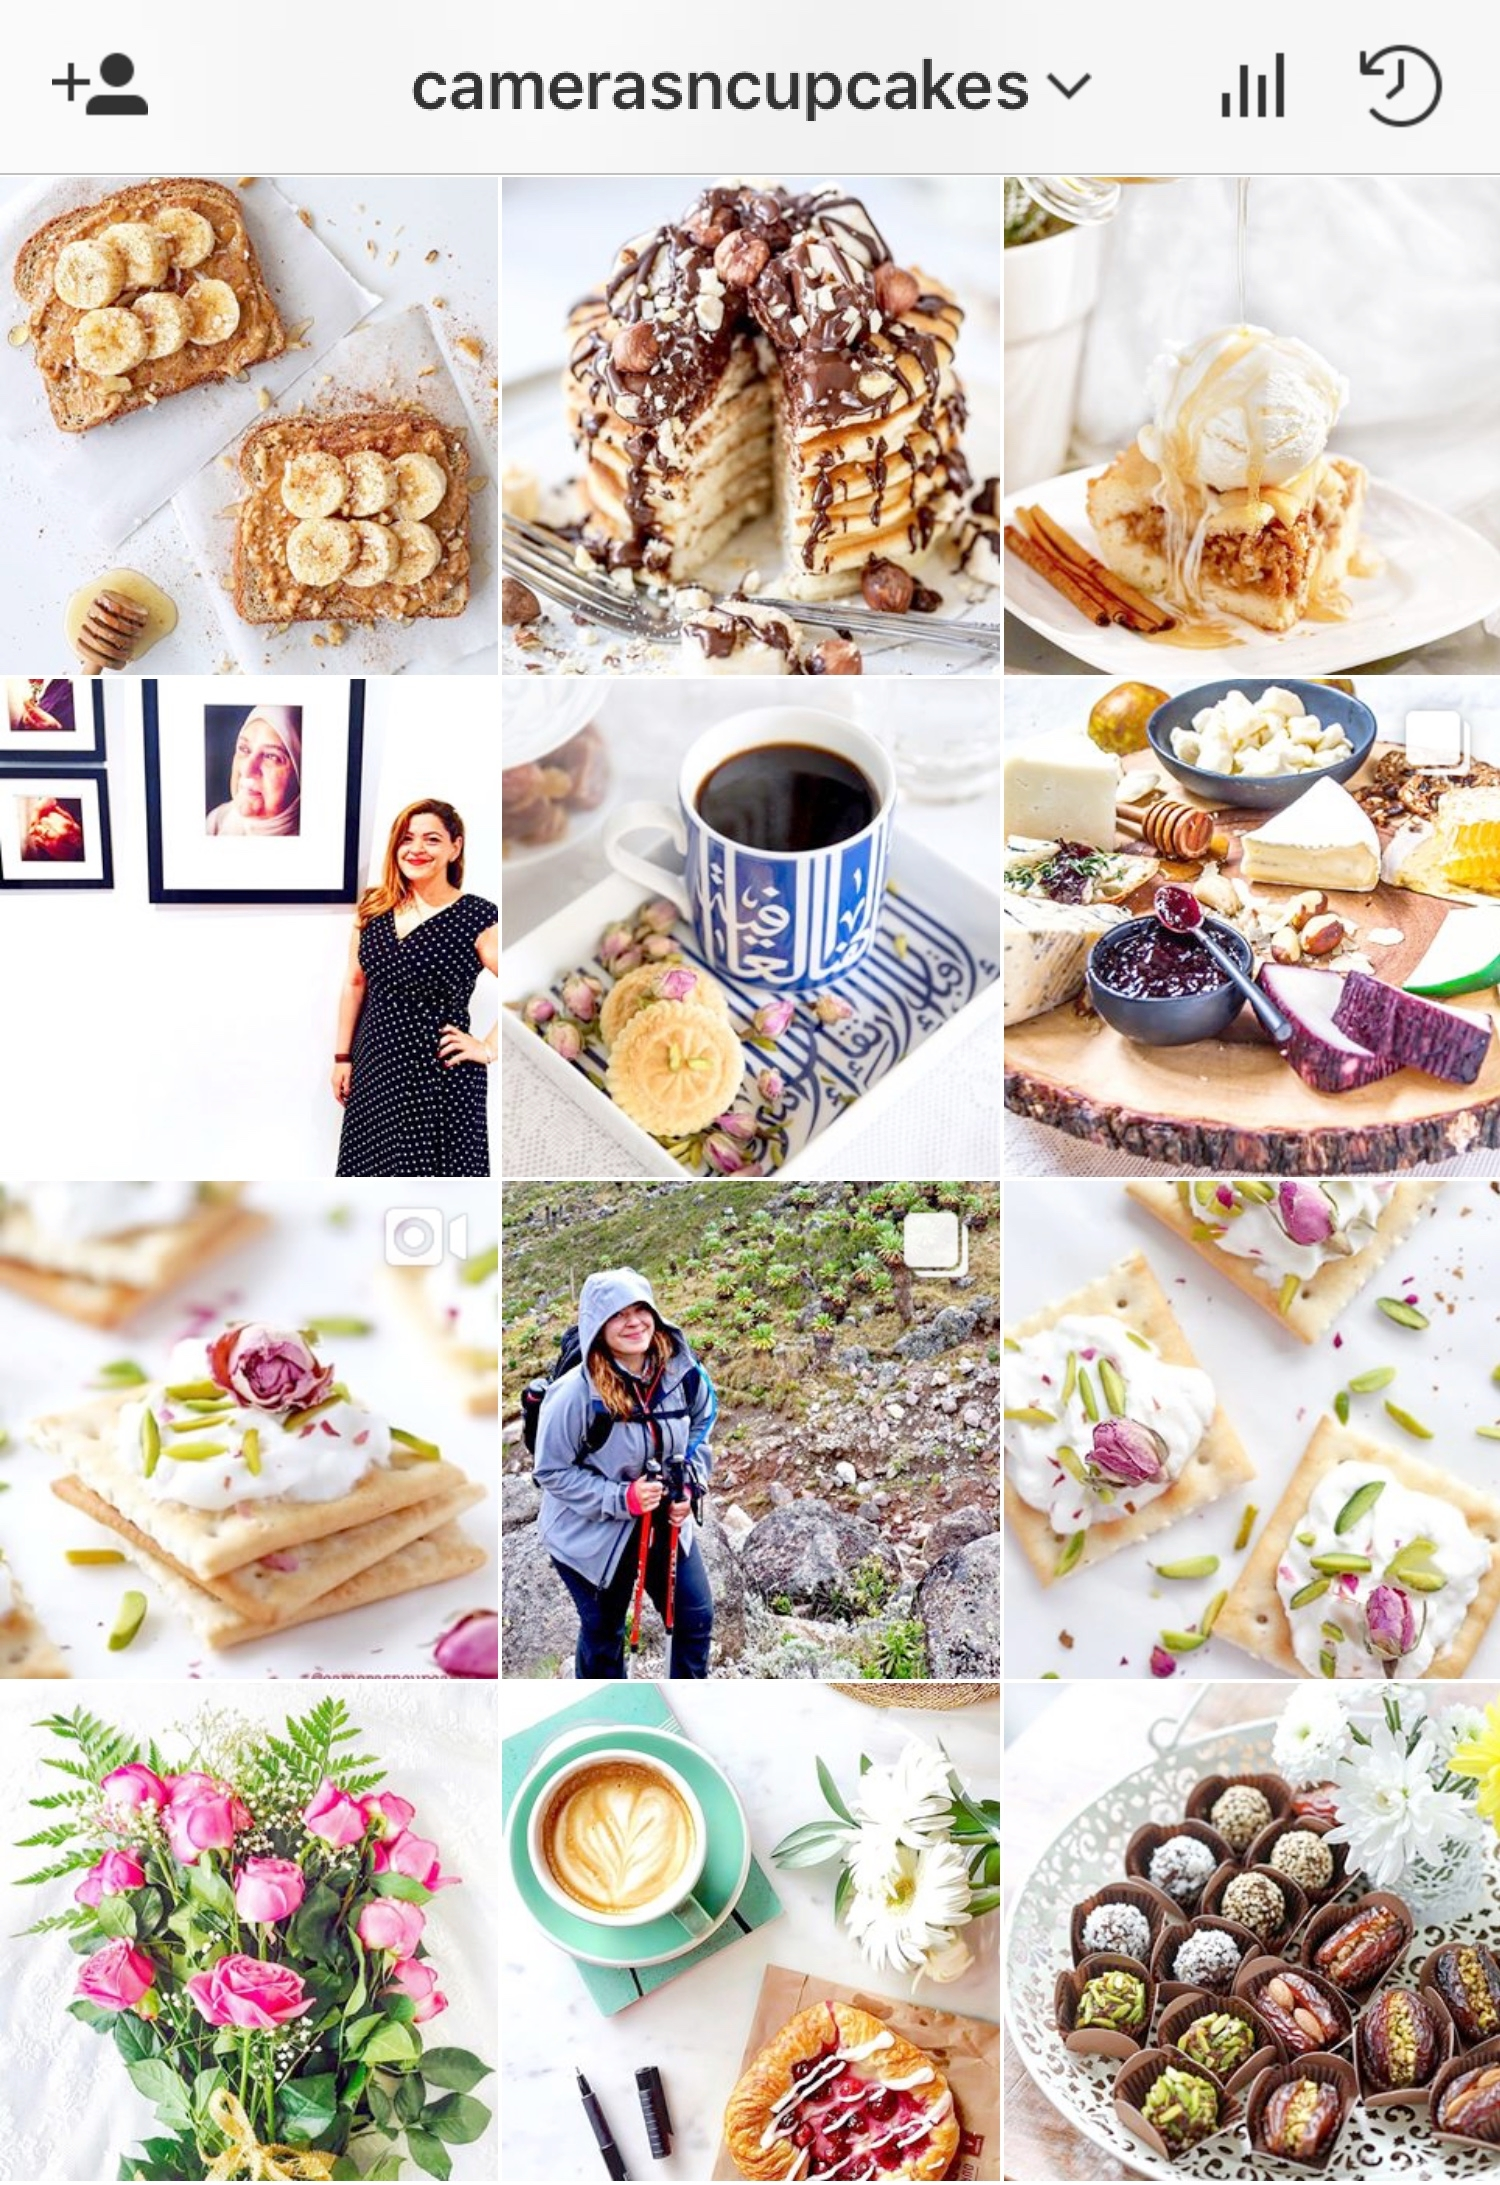 - If you've been following me on Instagram, you know I use negative space pretty much most of the time (be it a food photo, a portrait or even a lifestyle shot), it helps me create a cleaner look to my feed and focus more on colour and texture.